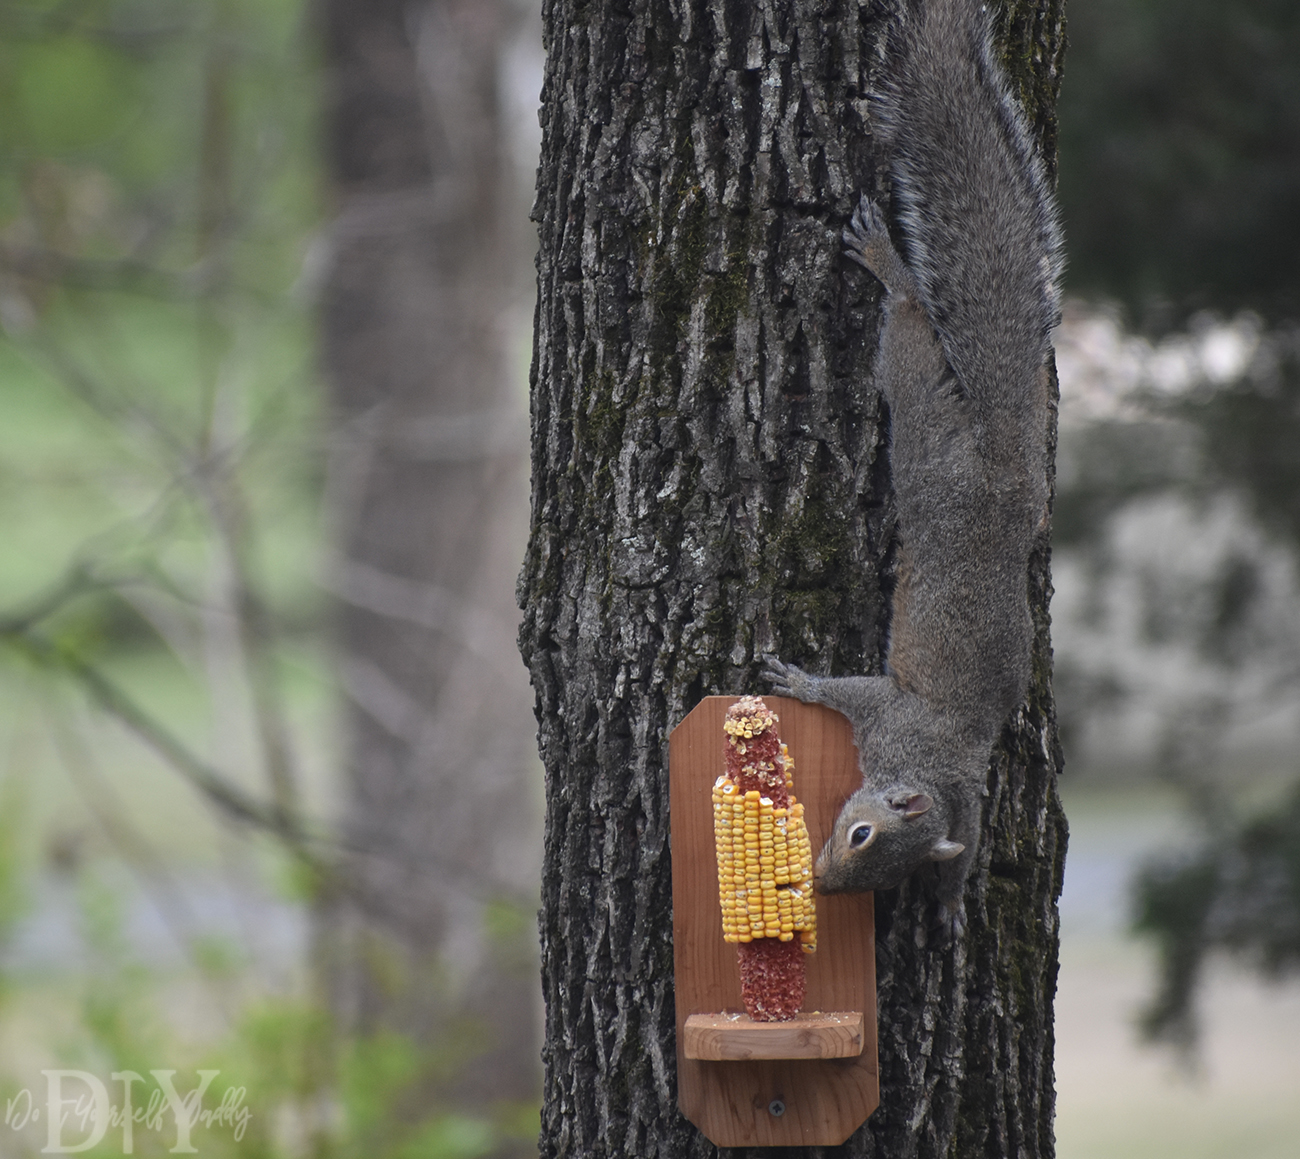 Diy Project Build Your Own Basic Squirrel Feeder Do It Yourself Daddy